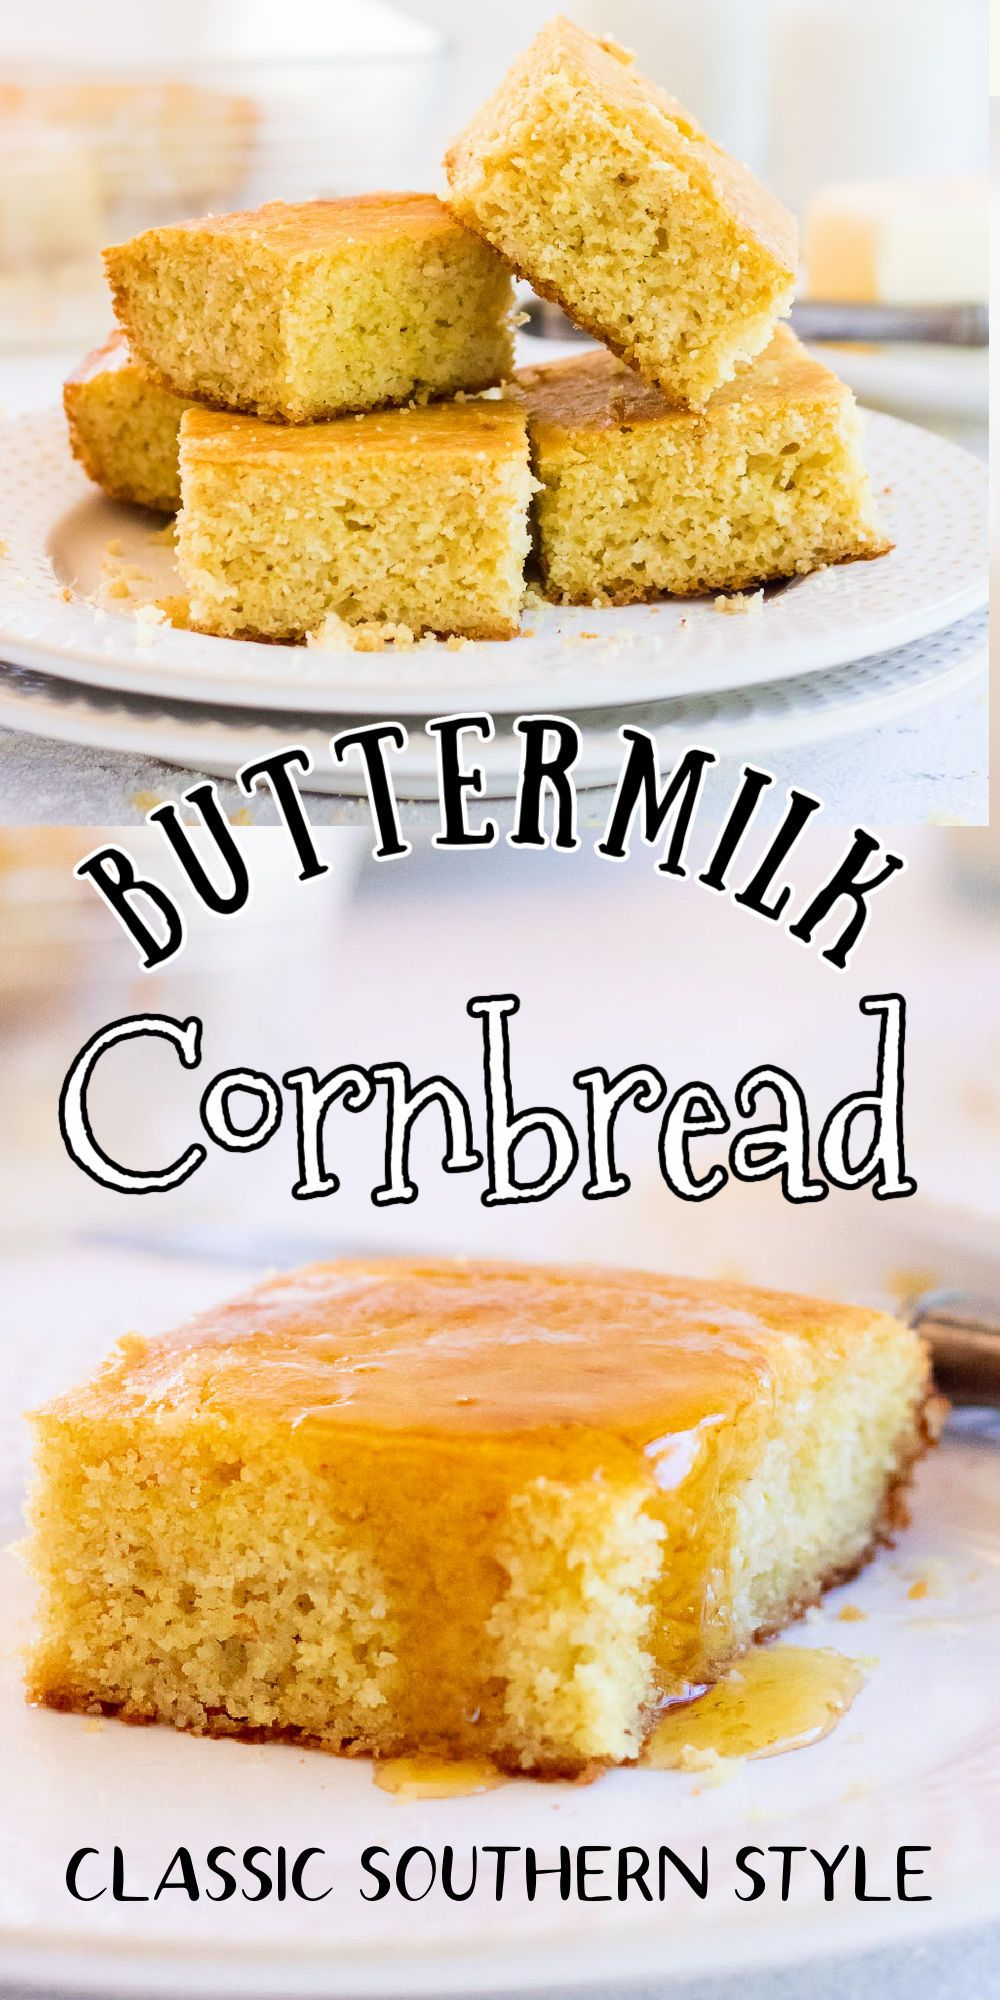 Southern Cornbread Recipe Made With Buttermilk Is A Classic Quick And Easy Cornbread Southern Classic Recipe